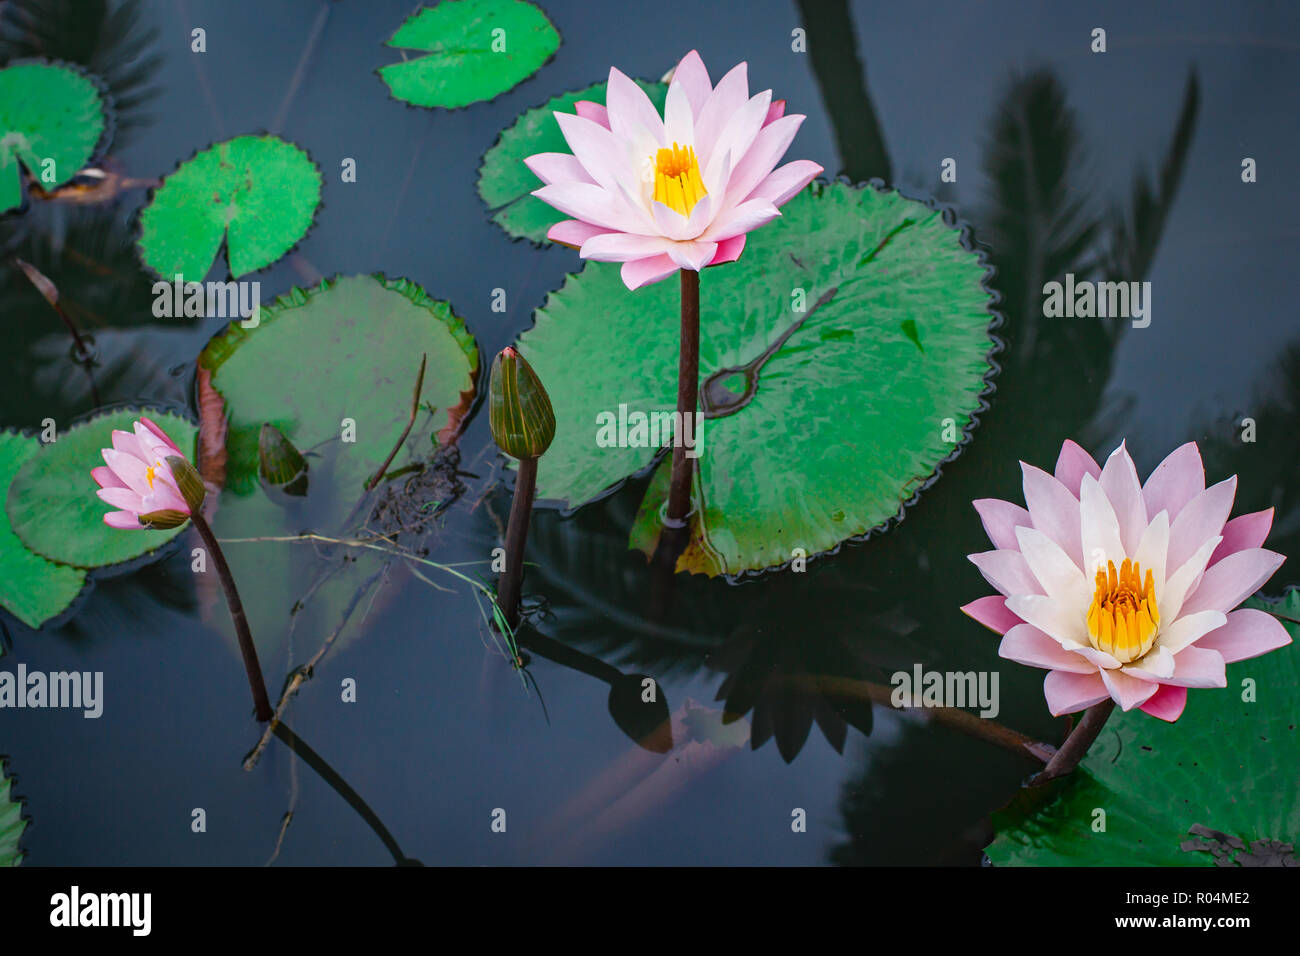 Beautiful Pink Lotus Flower With Green Leaf In Thailand Stock Photo